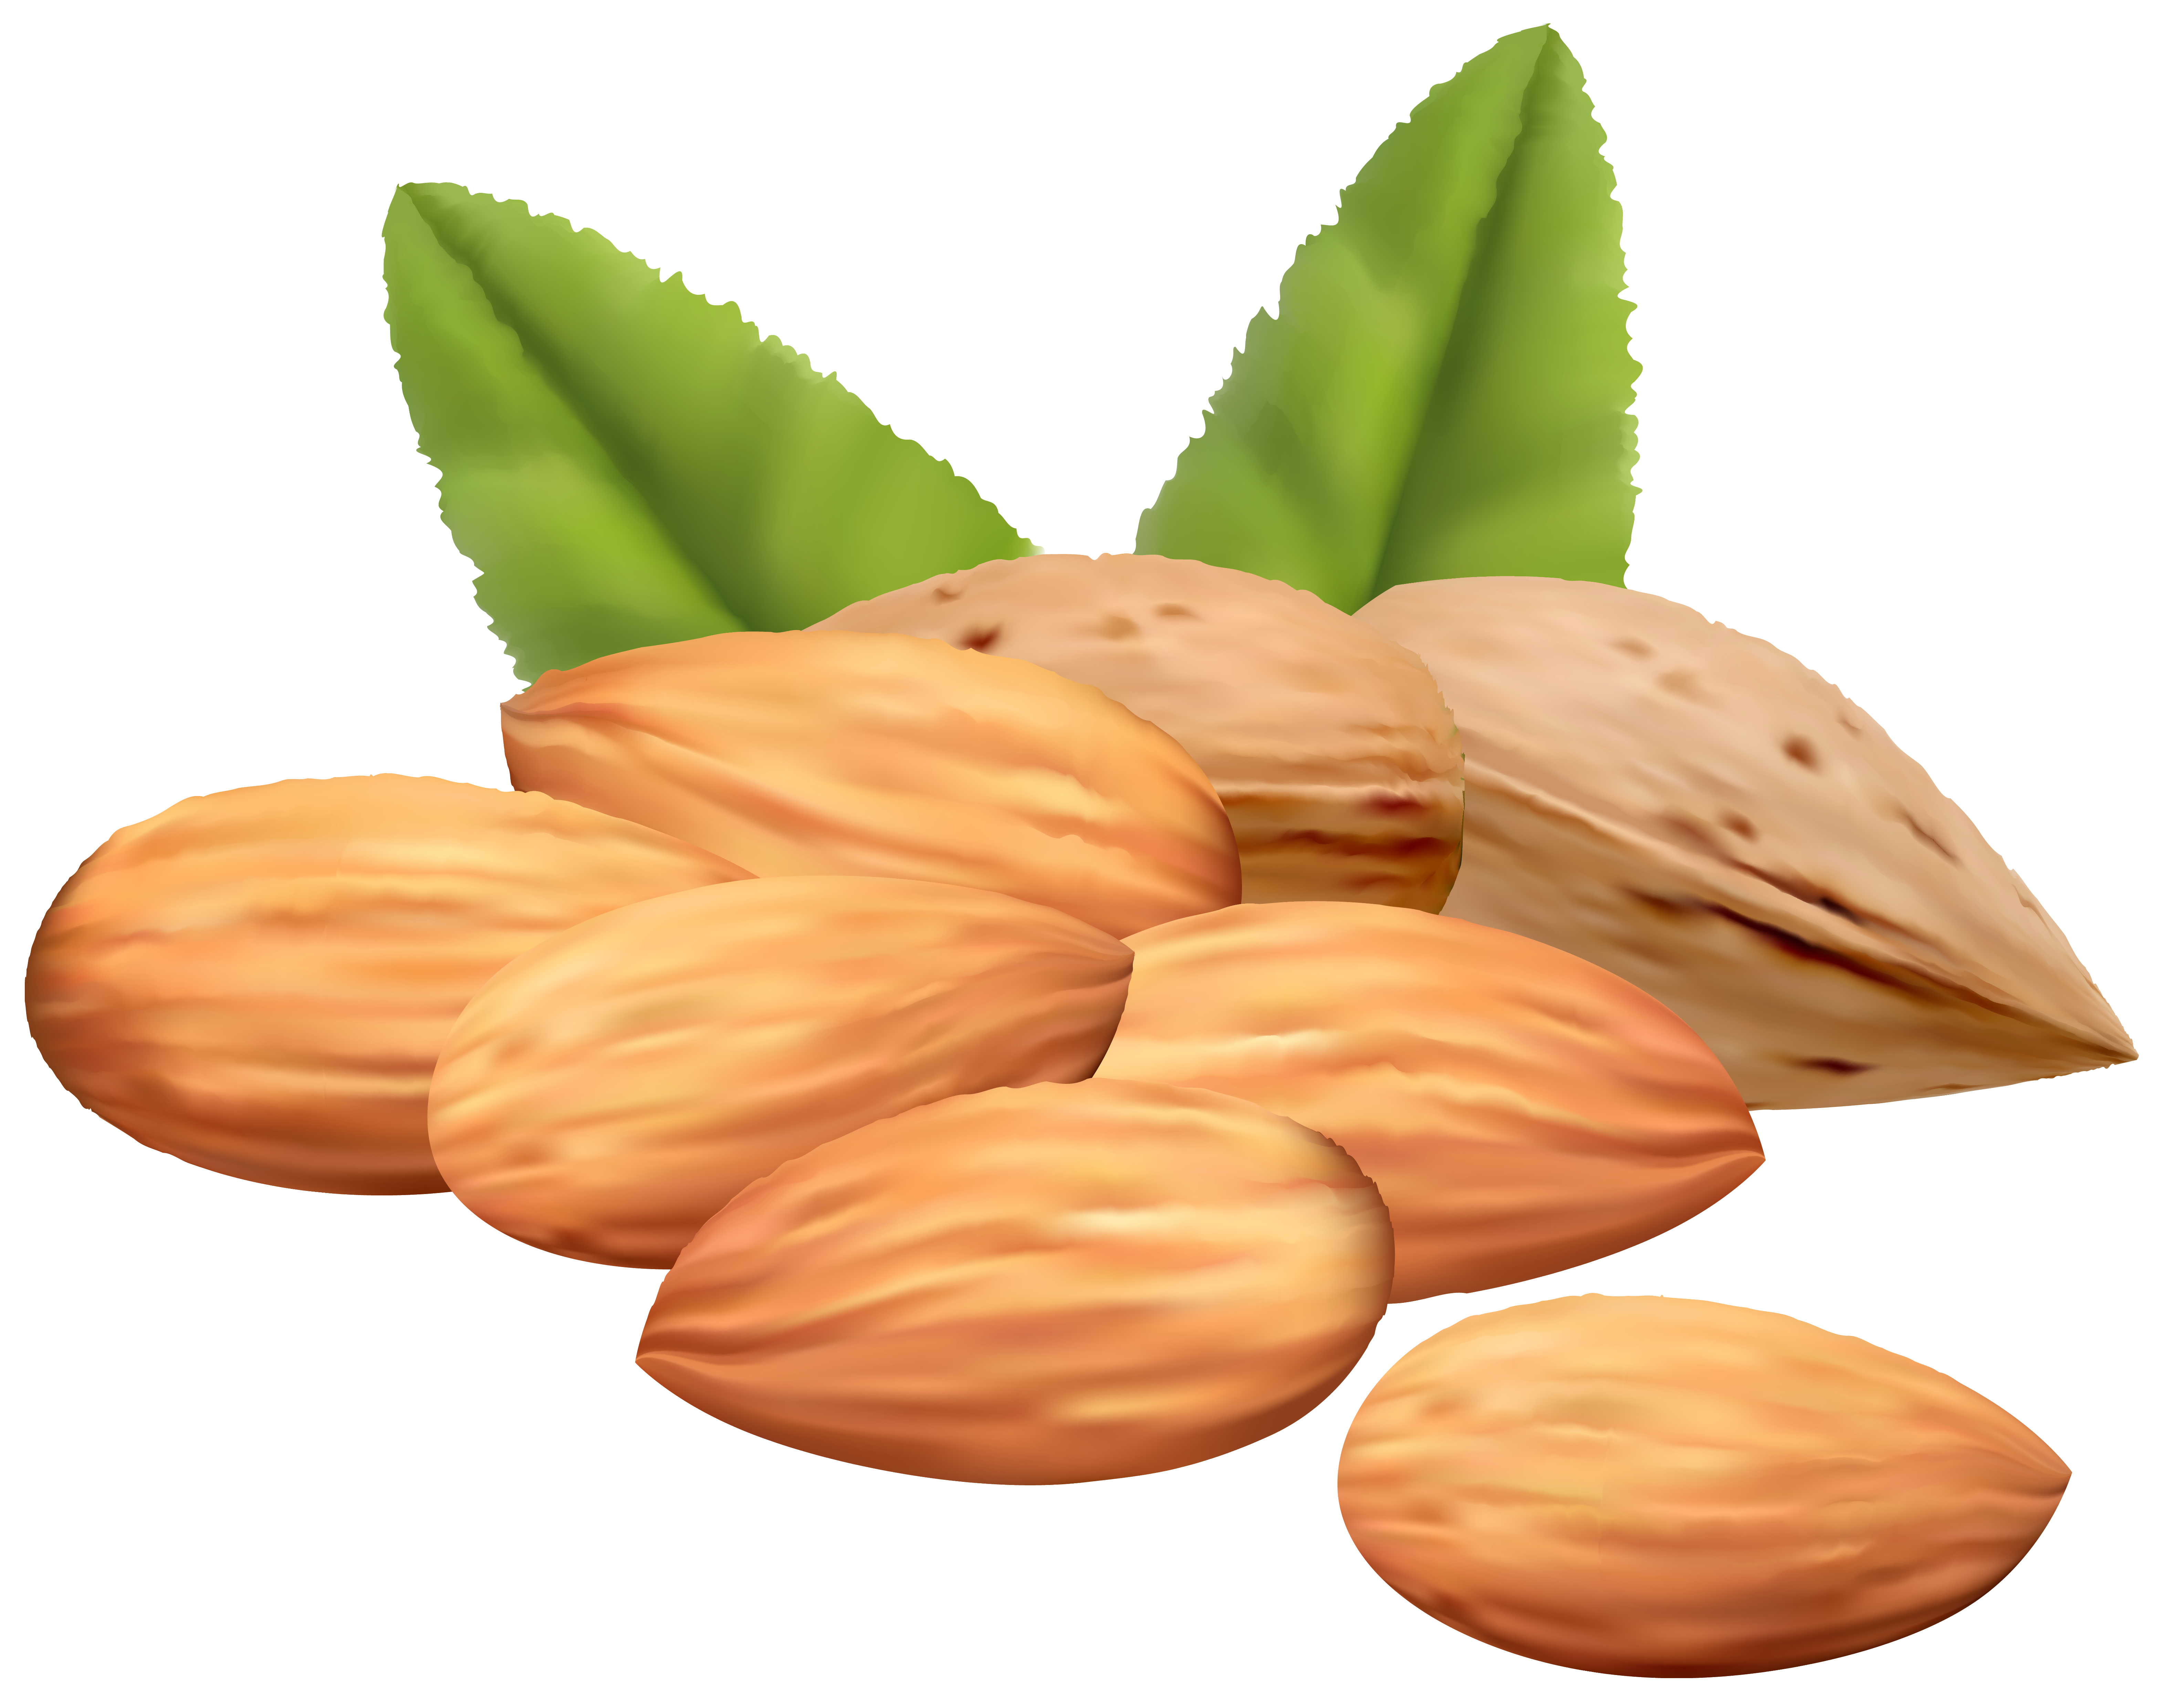 Images of nuts clipart.